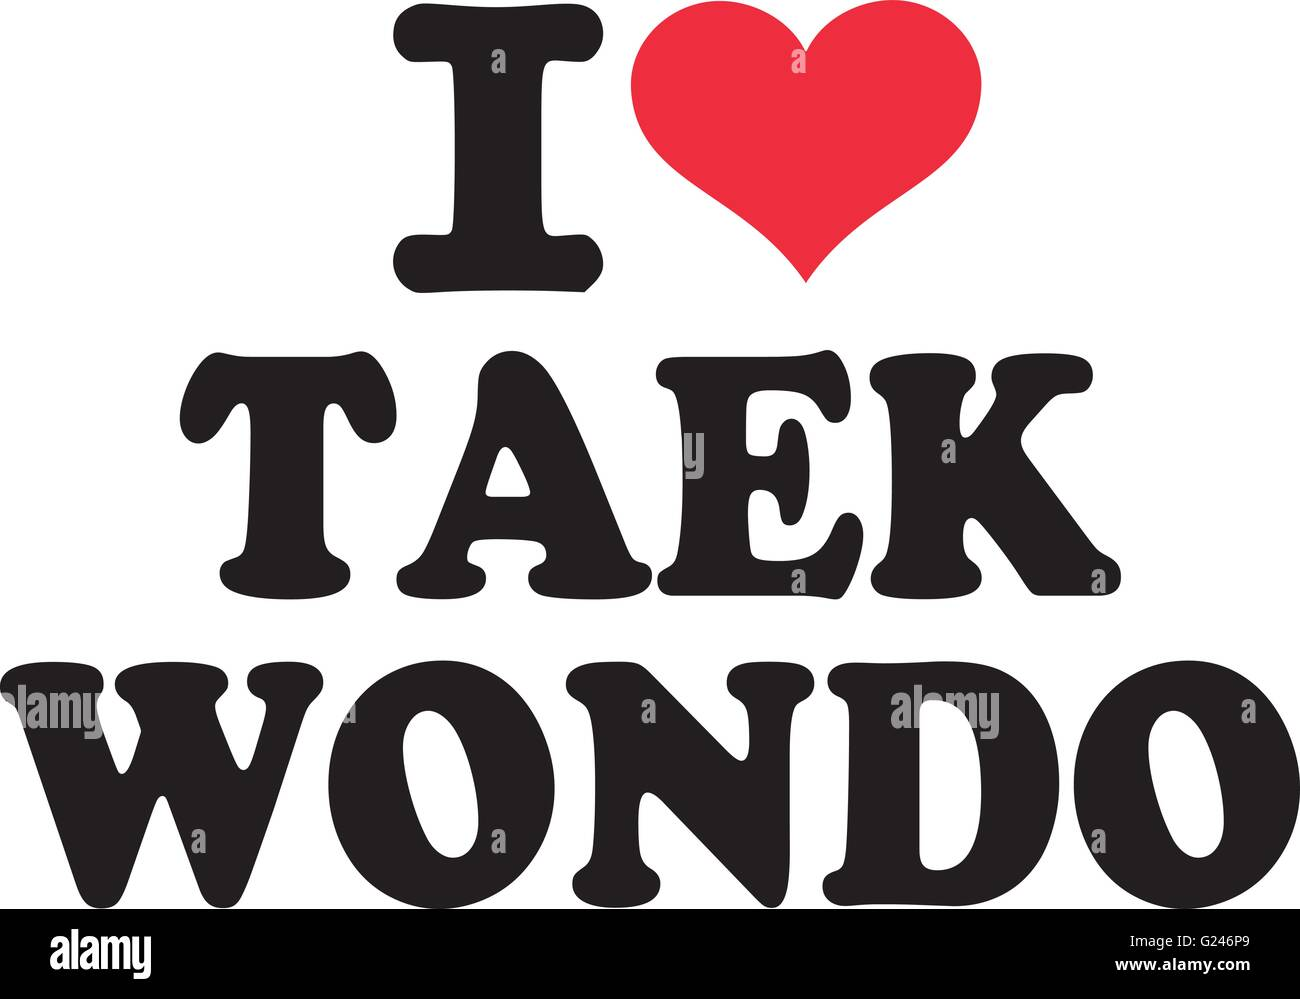 Taekwondo Stock Vector Images Alamy